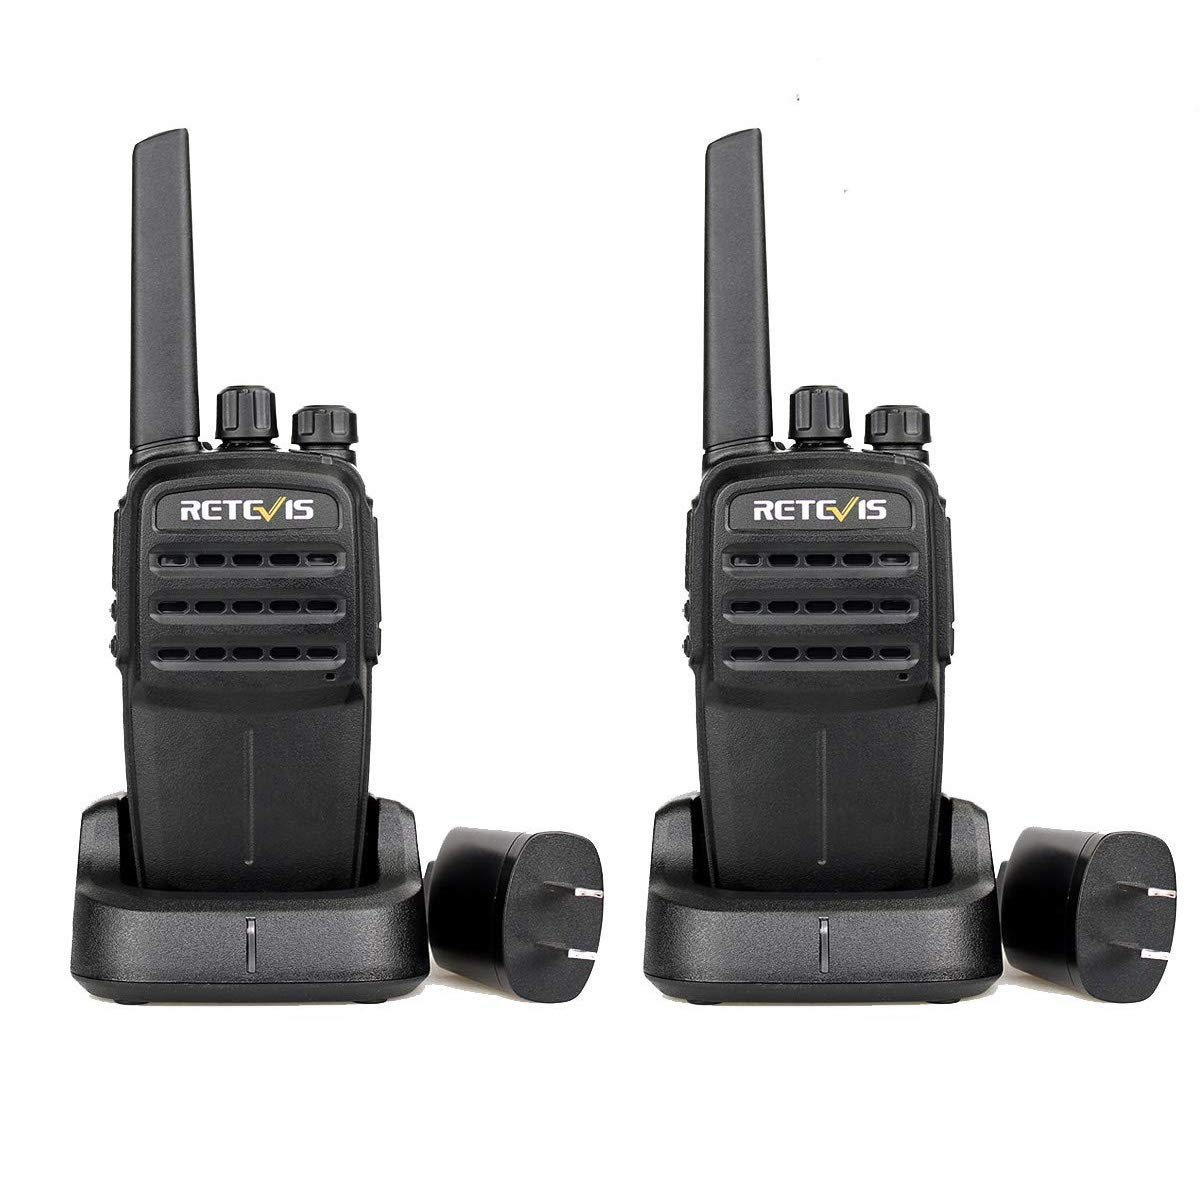 Retevis RT40 Walkie Talkie Digital Rechargeable VOX Emergency 1700mAh 51 CTCSS 214 DCS Group Call FRS Security Long Range Two-Way Radio 2 Pack